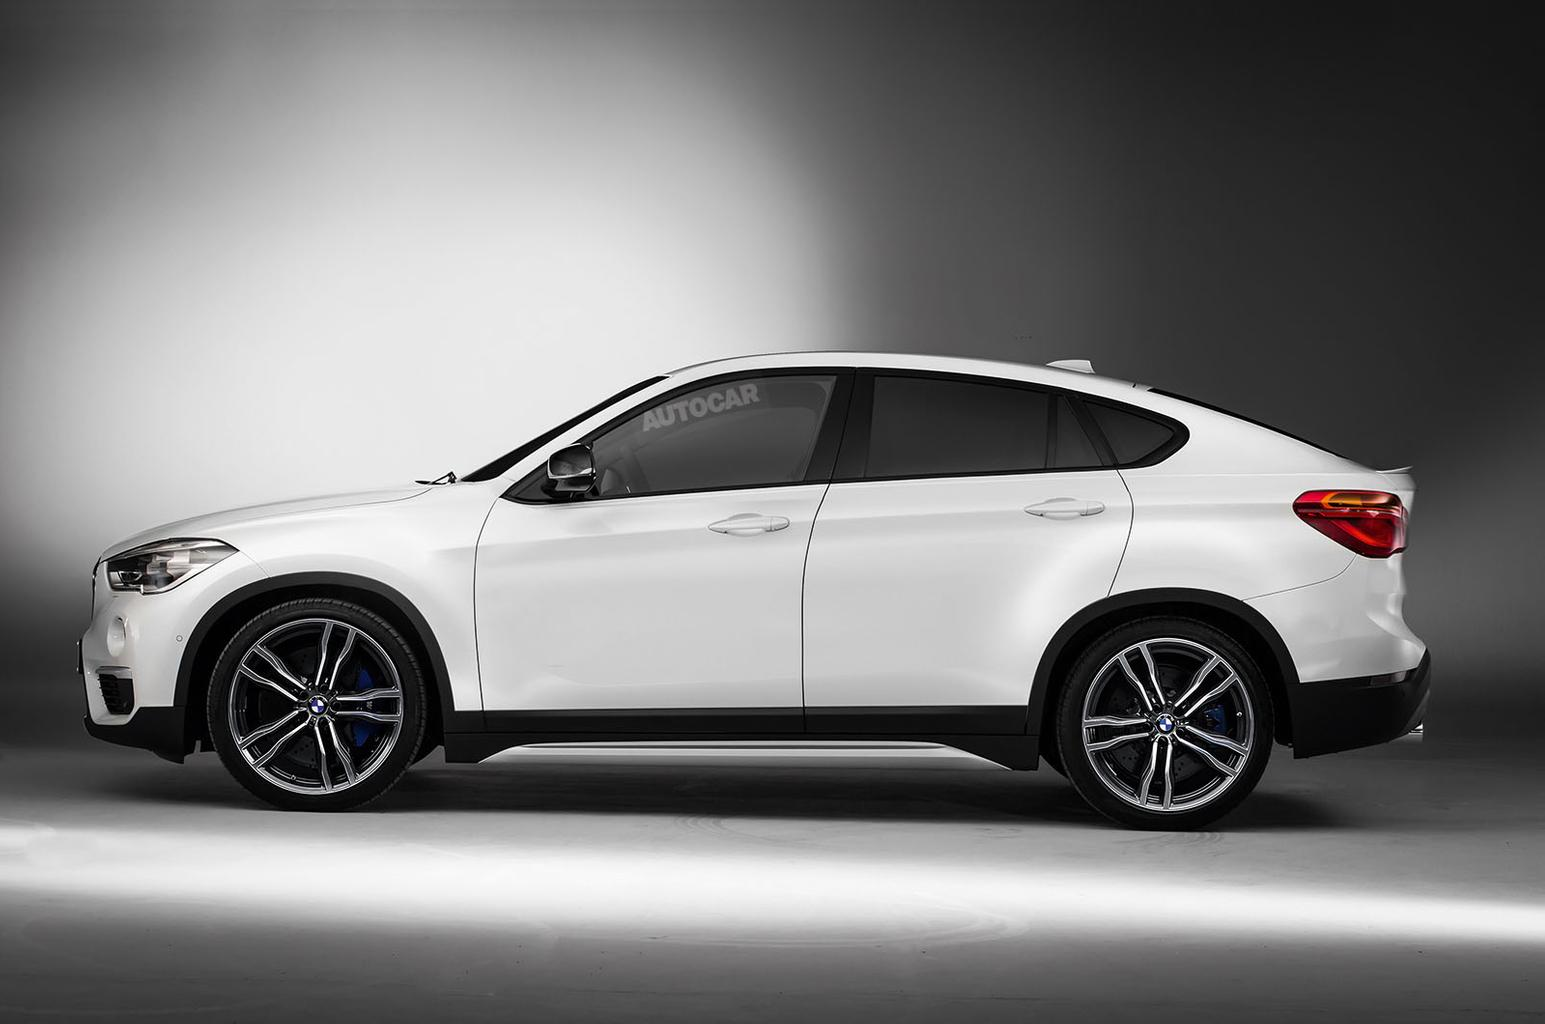 2016 Paris motor show – 12 new cars worth waiting for